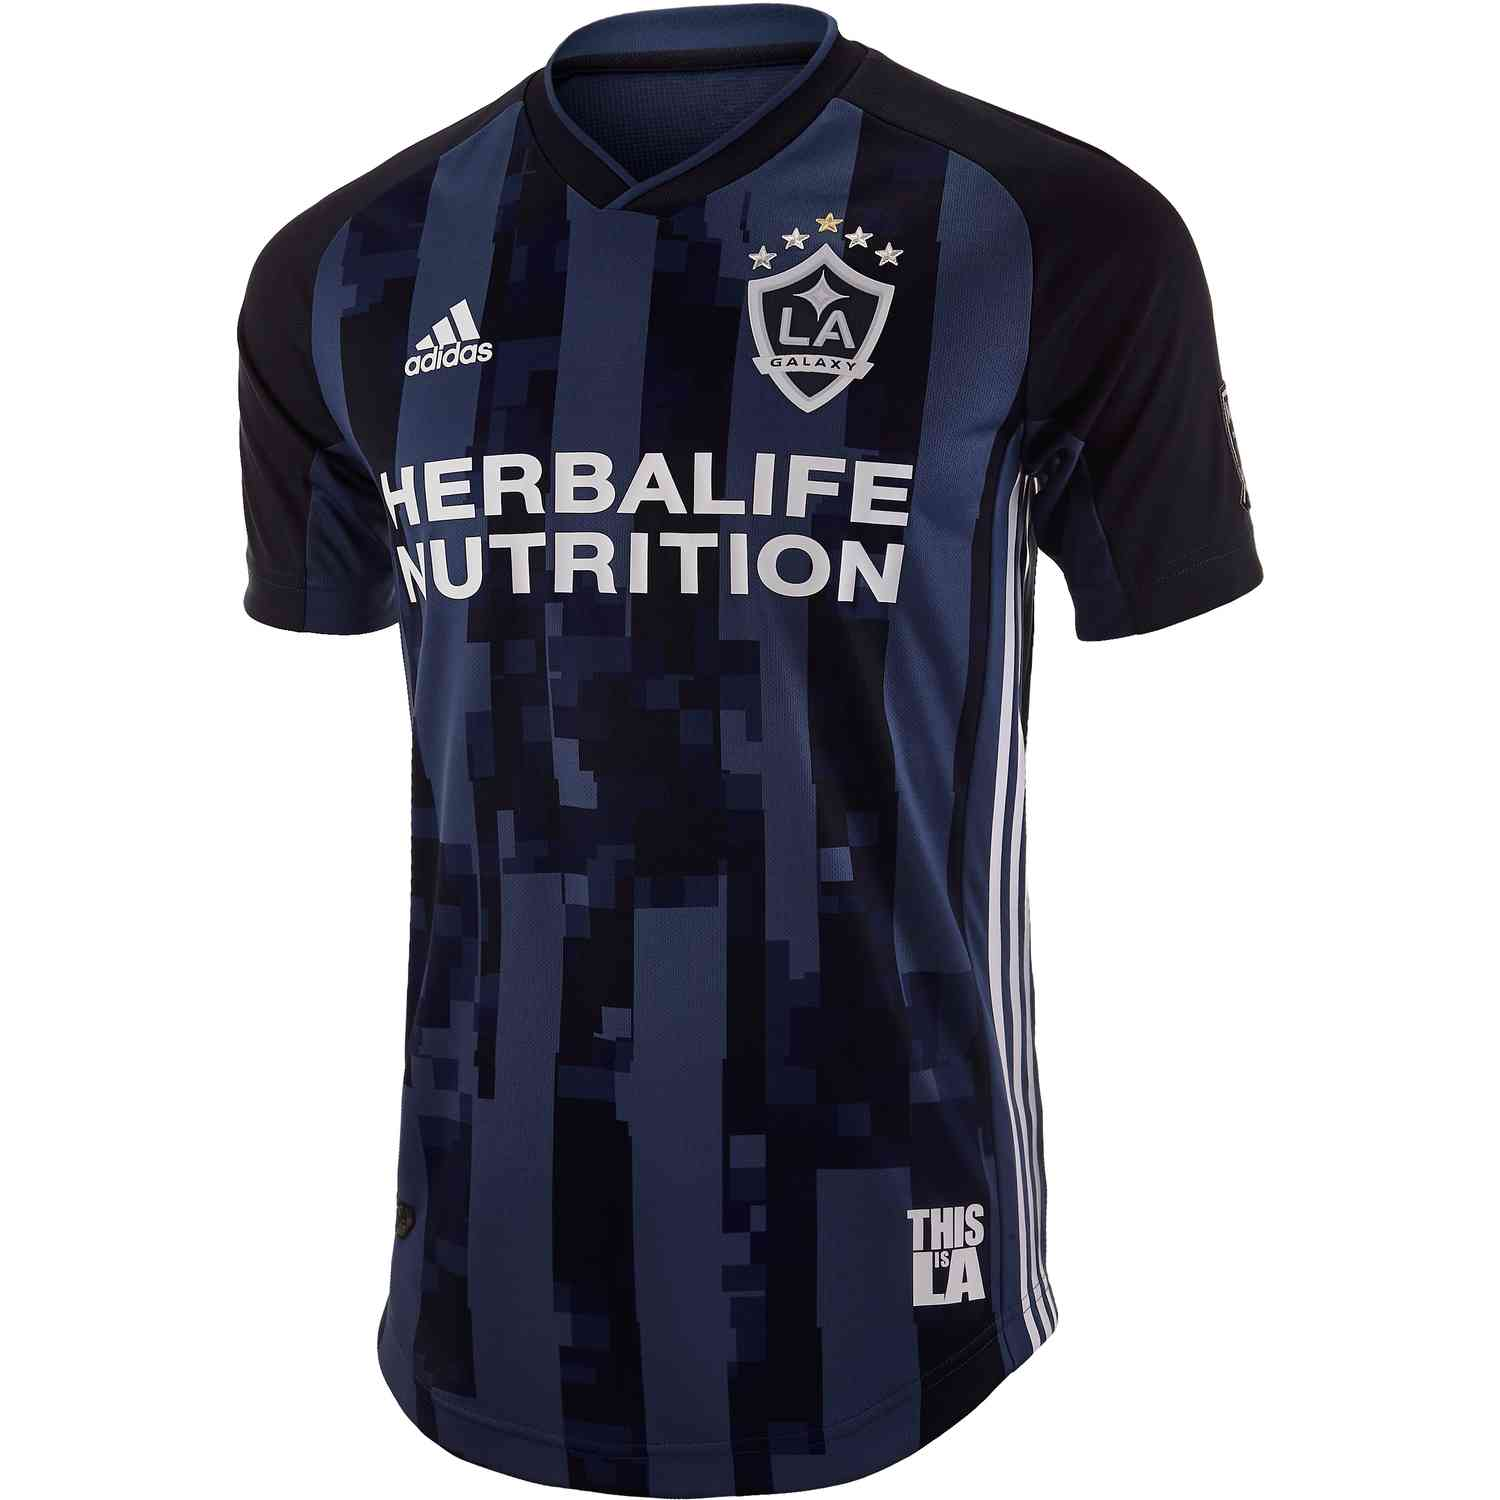 size 40 1383a 3705d adidas LA Galaxy Away Authentic Jersey – 2019